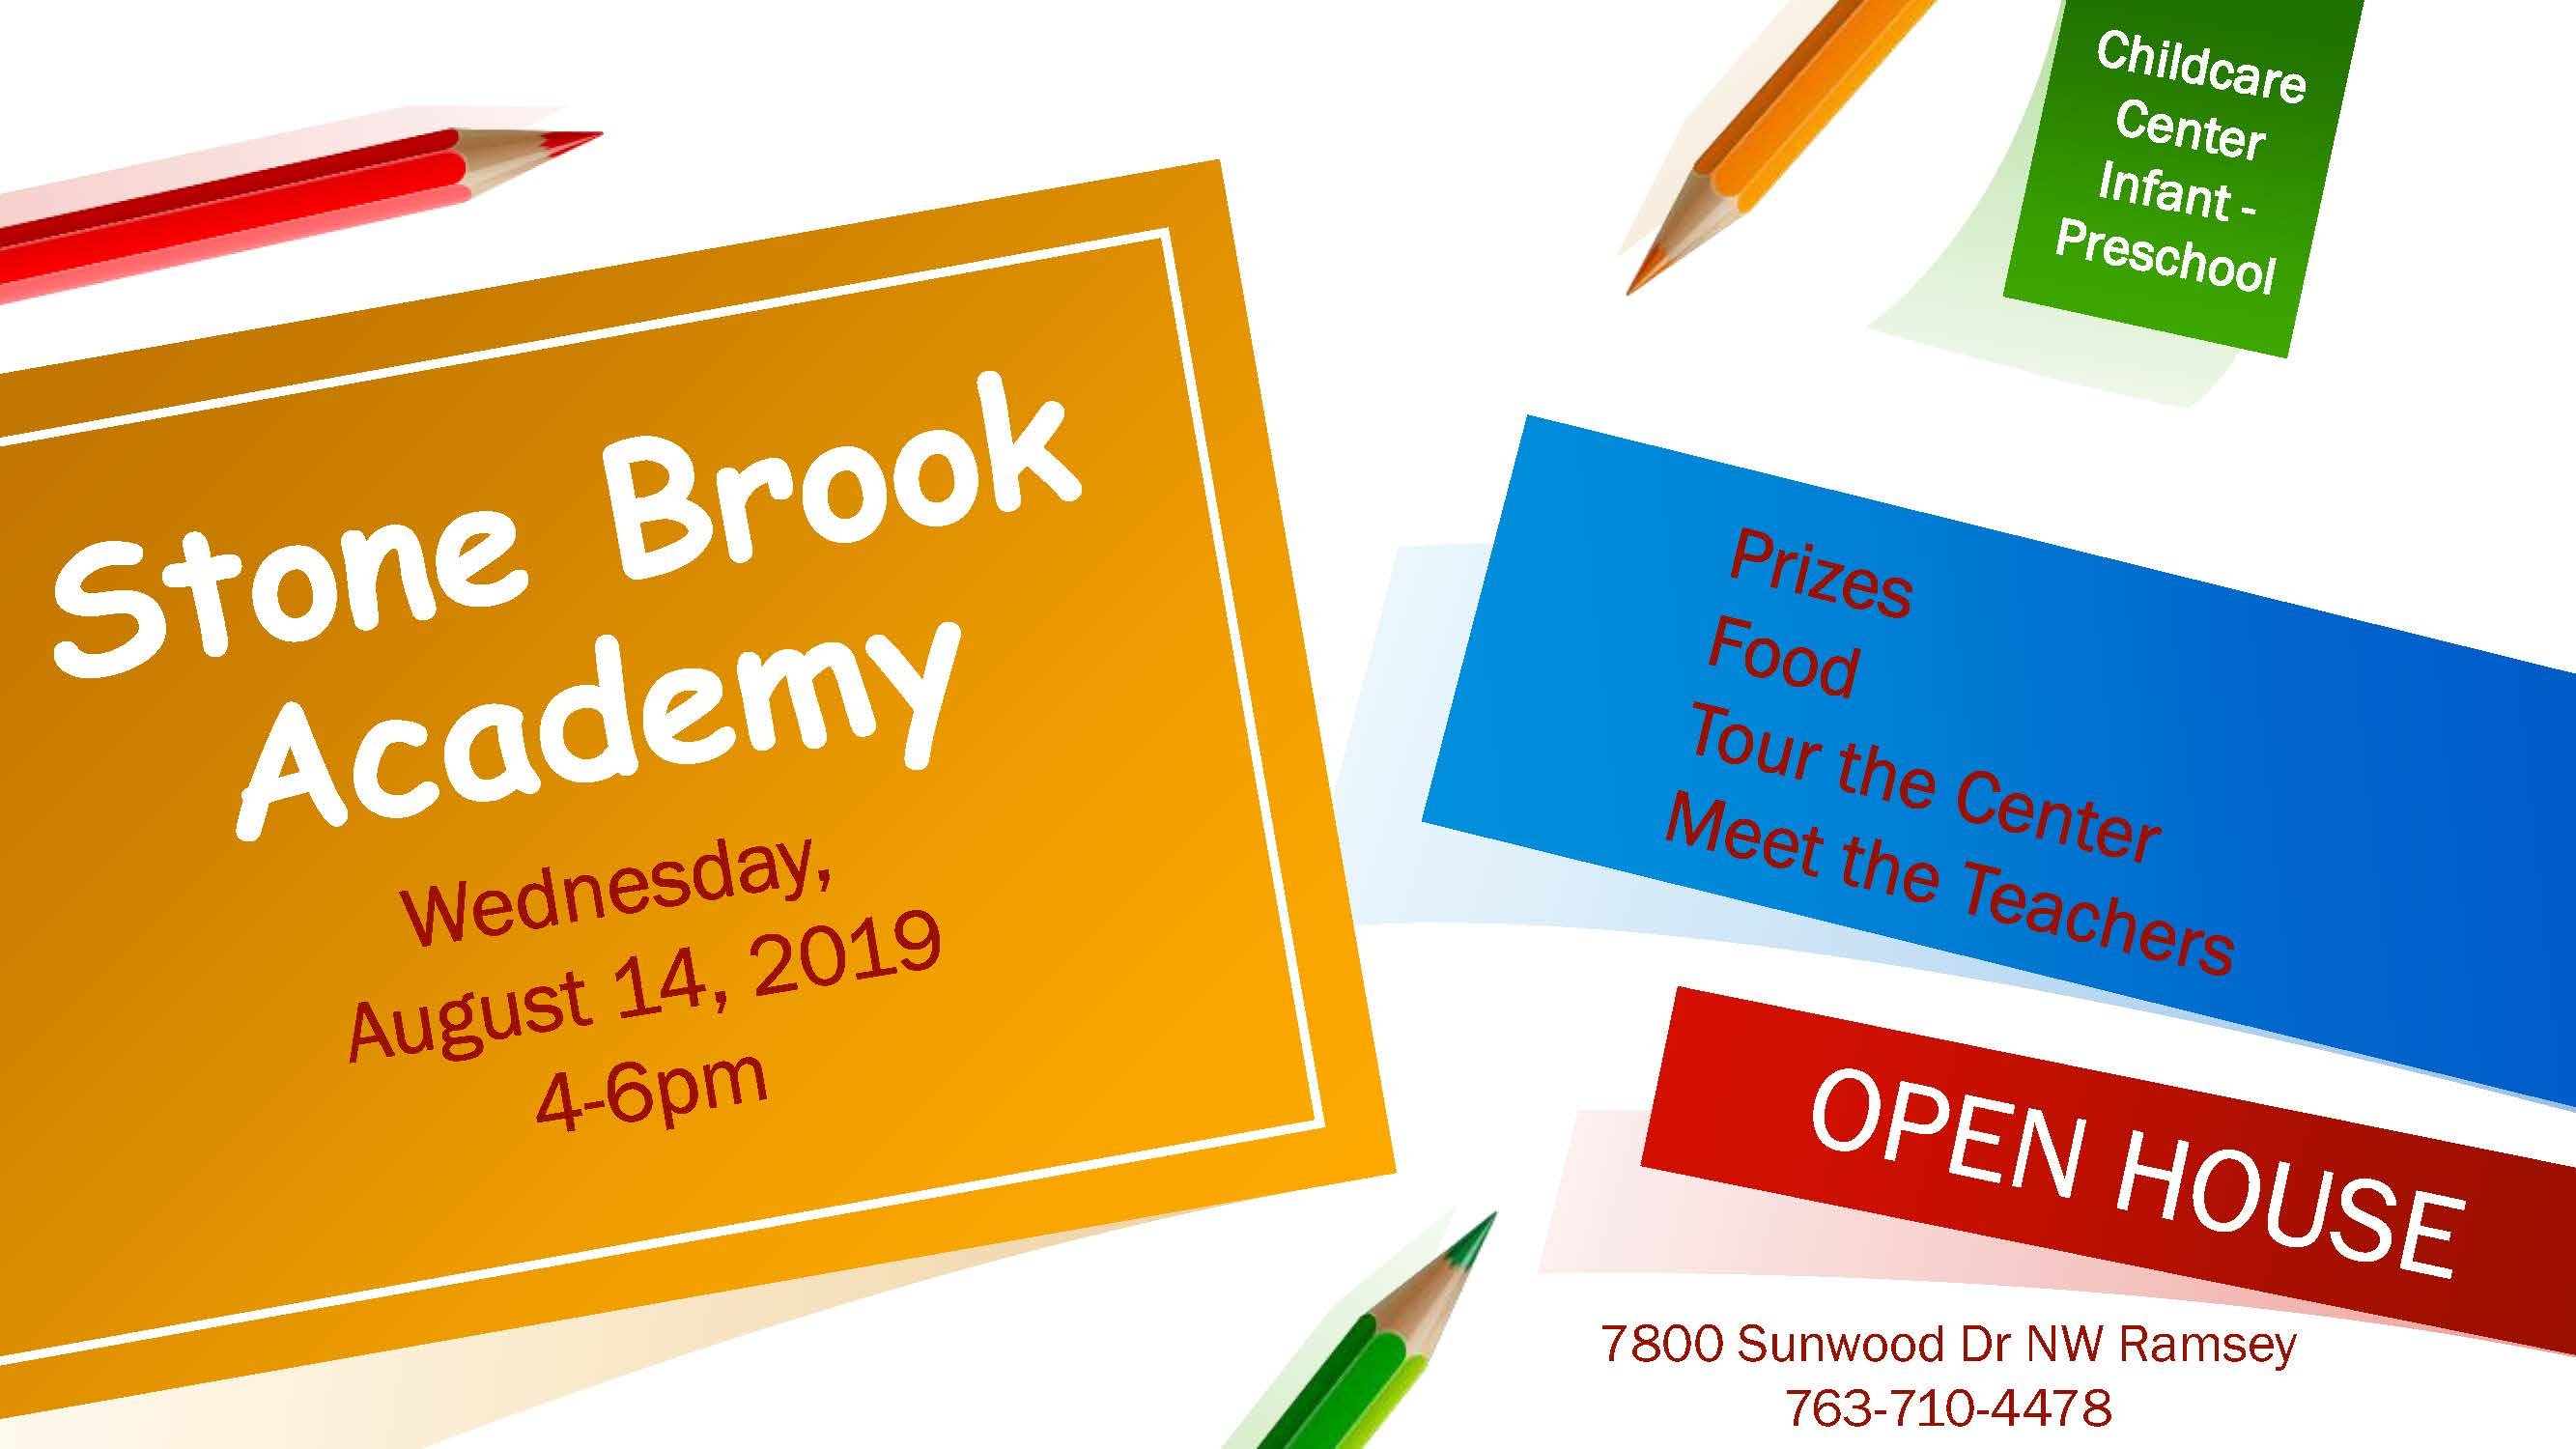 Stone Brook Academy open house